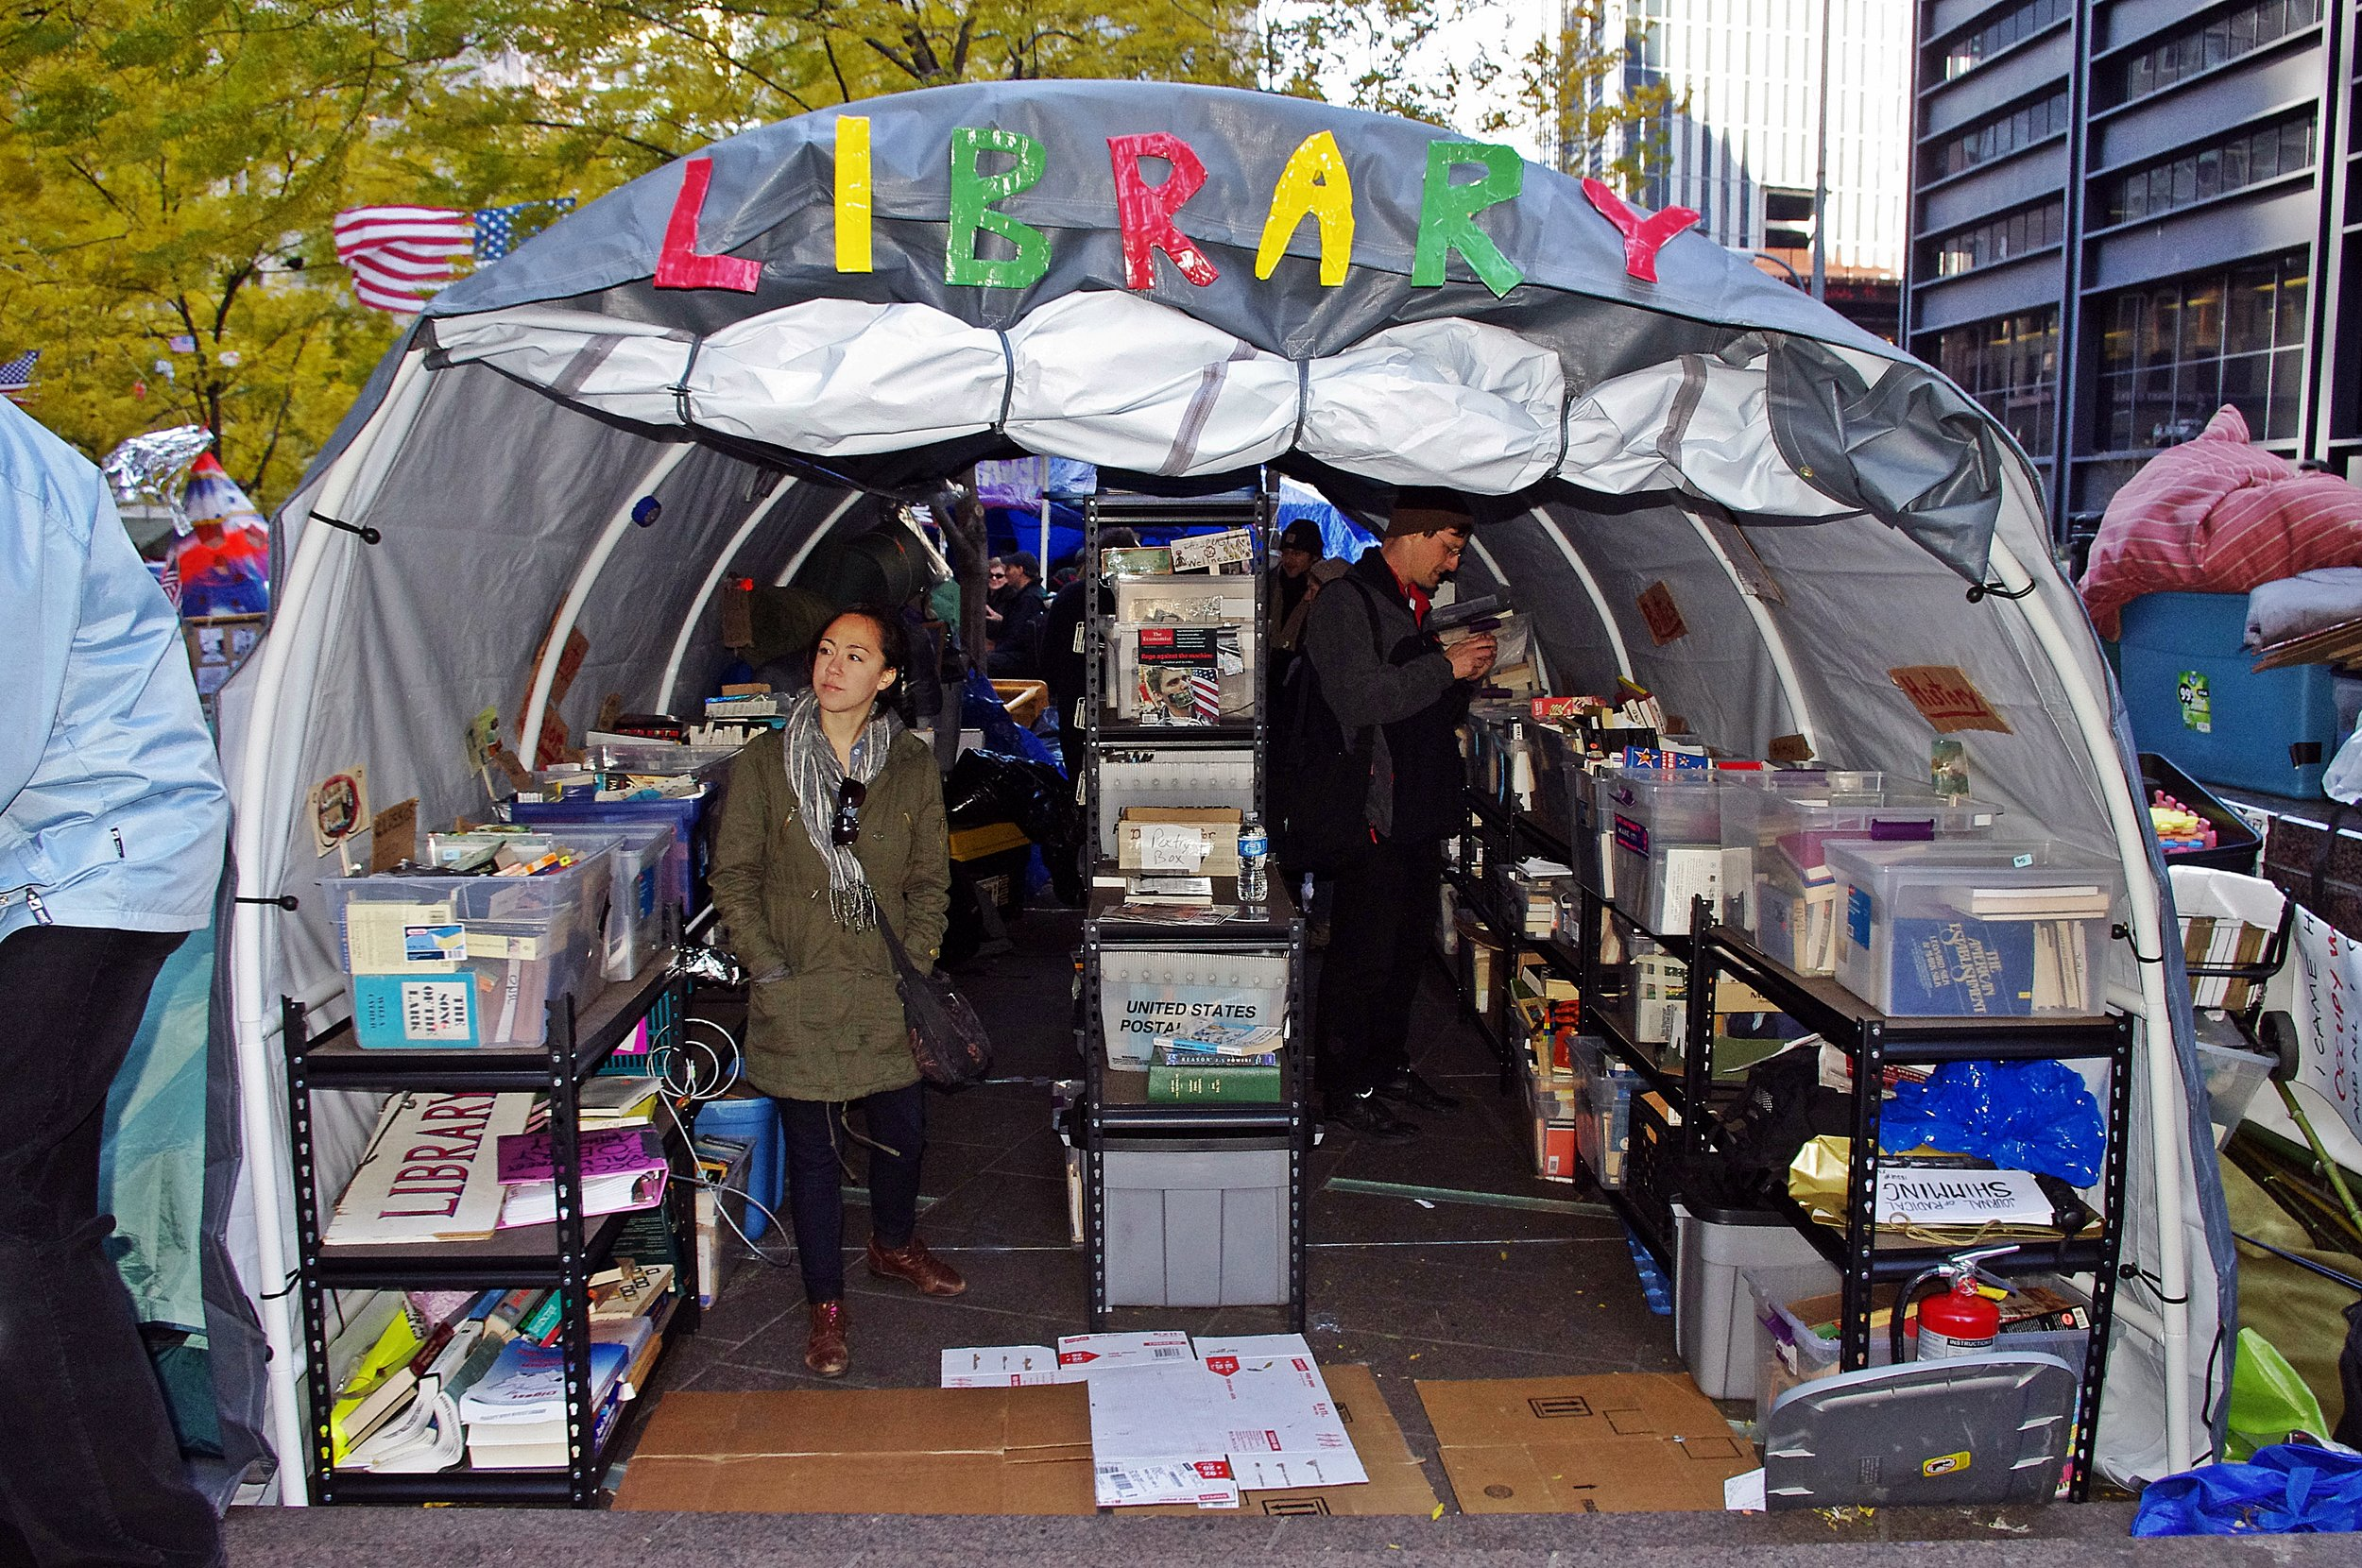 Peoples_Library_Occupy_Wall_Street_2011_Shankbone.JPG